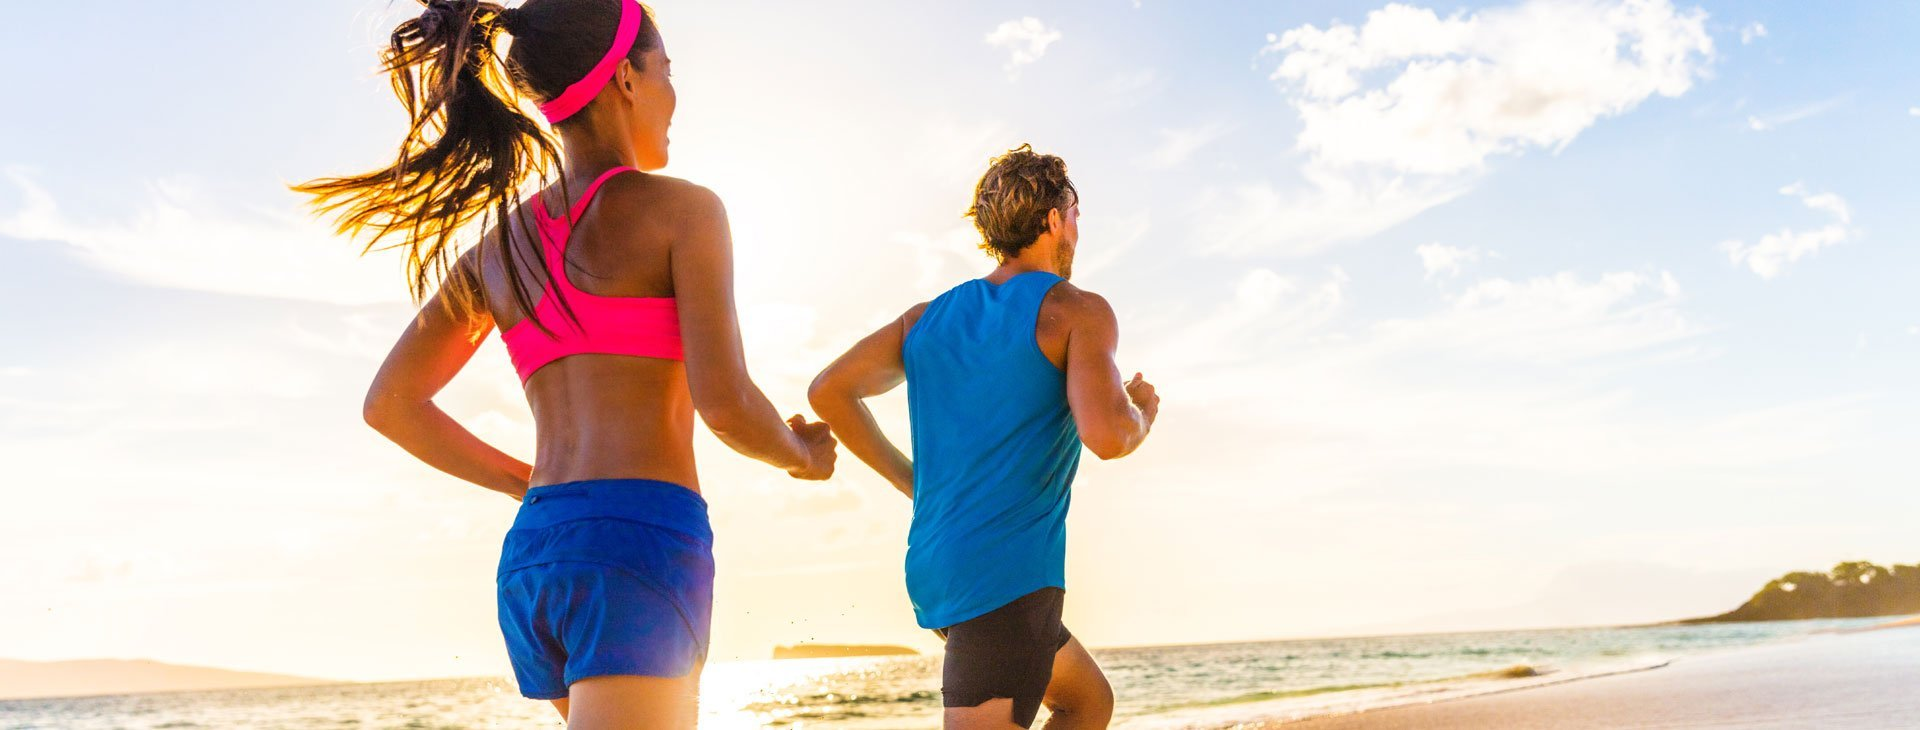 The Anti-Aging Guidebook: Man and Woman Running